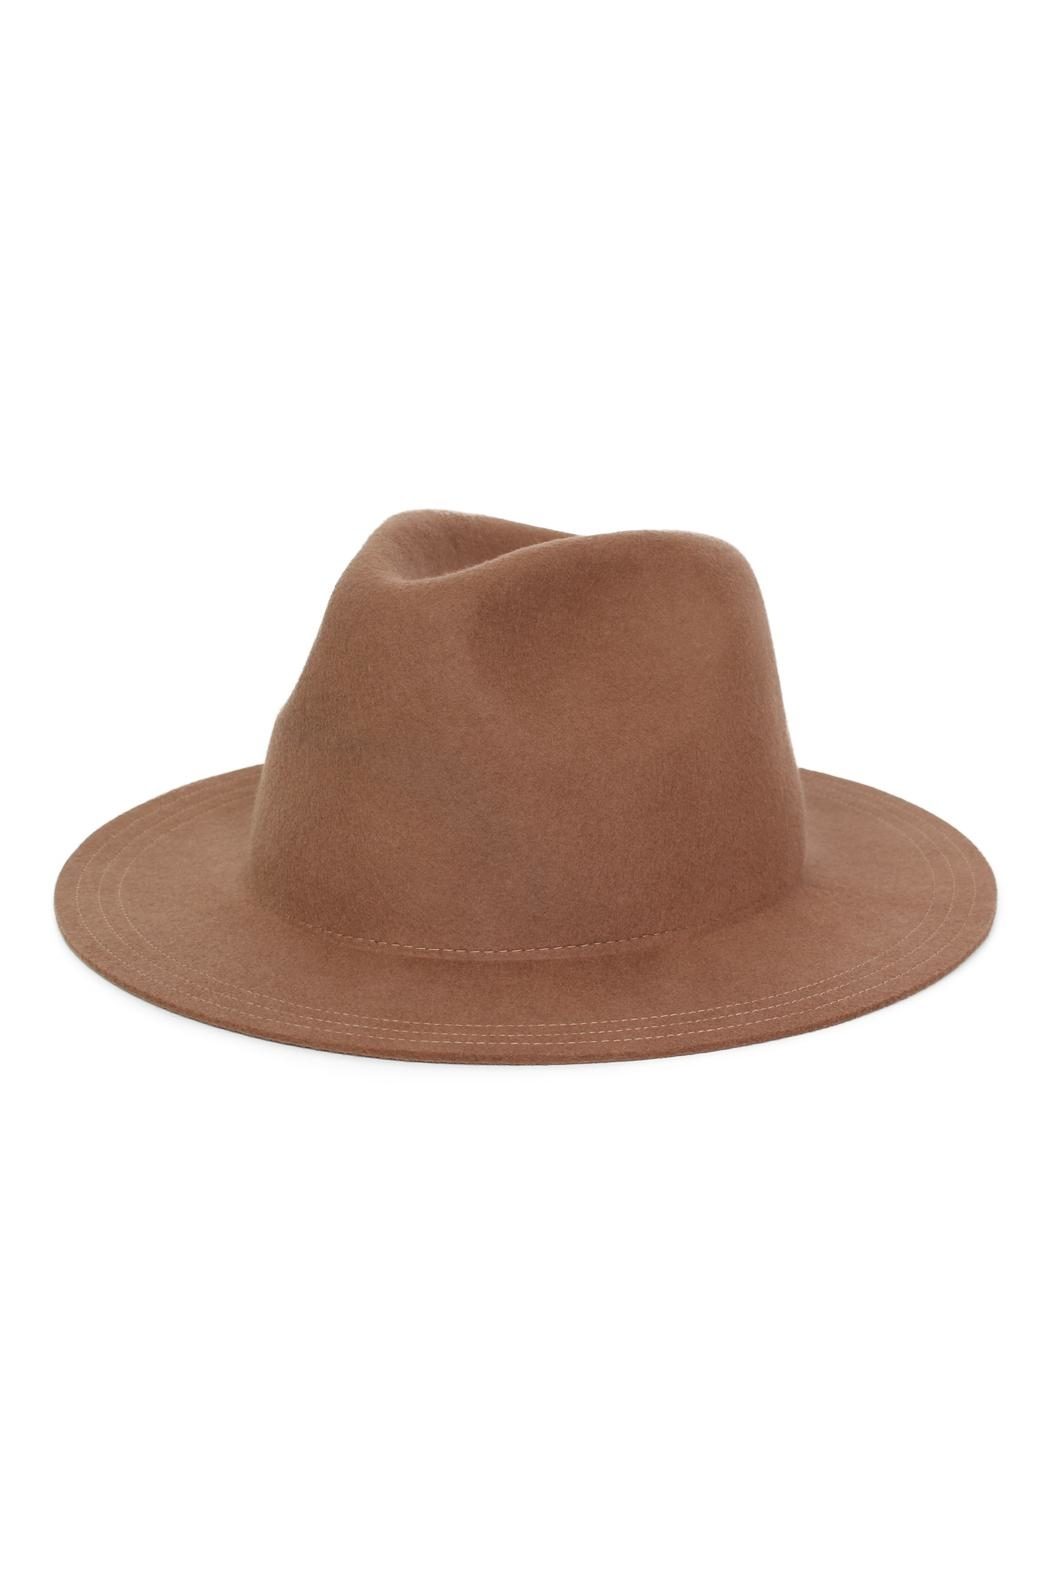 Rock Etiquette Beige Hipster Hat From West Hollywood Tiques ba43264ac1e0